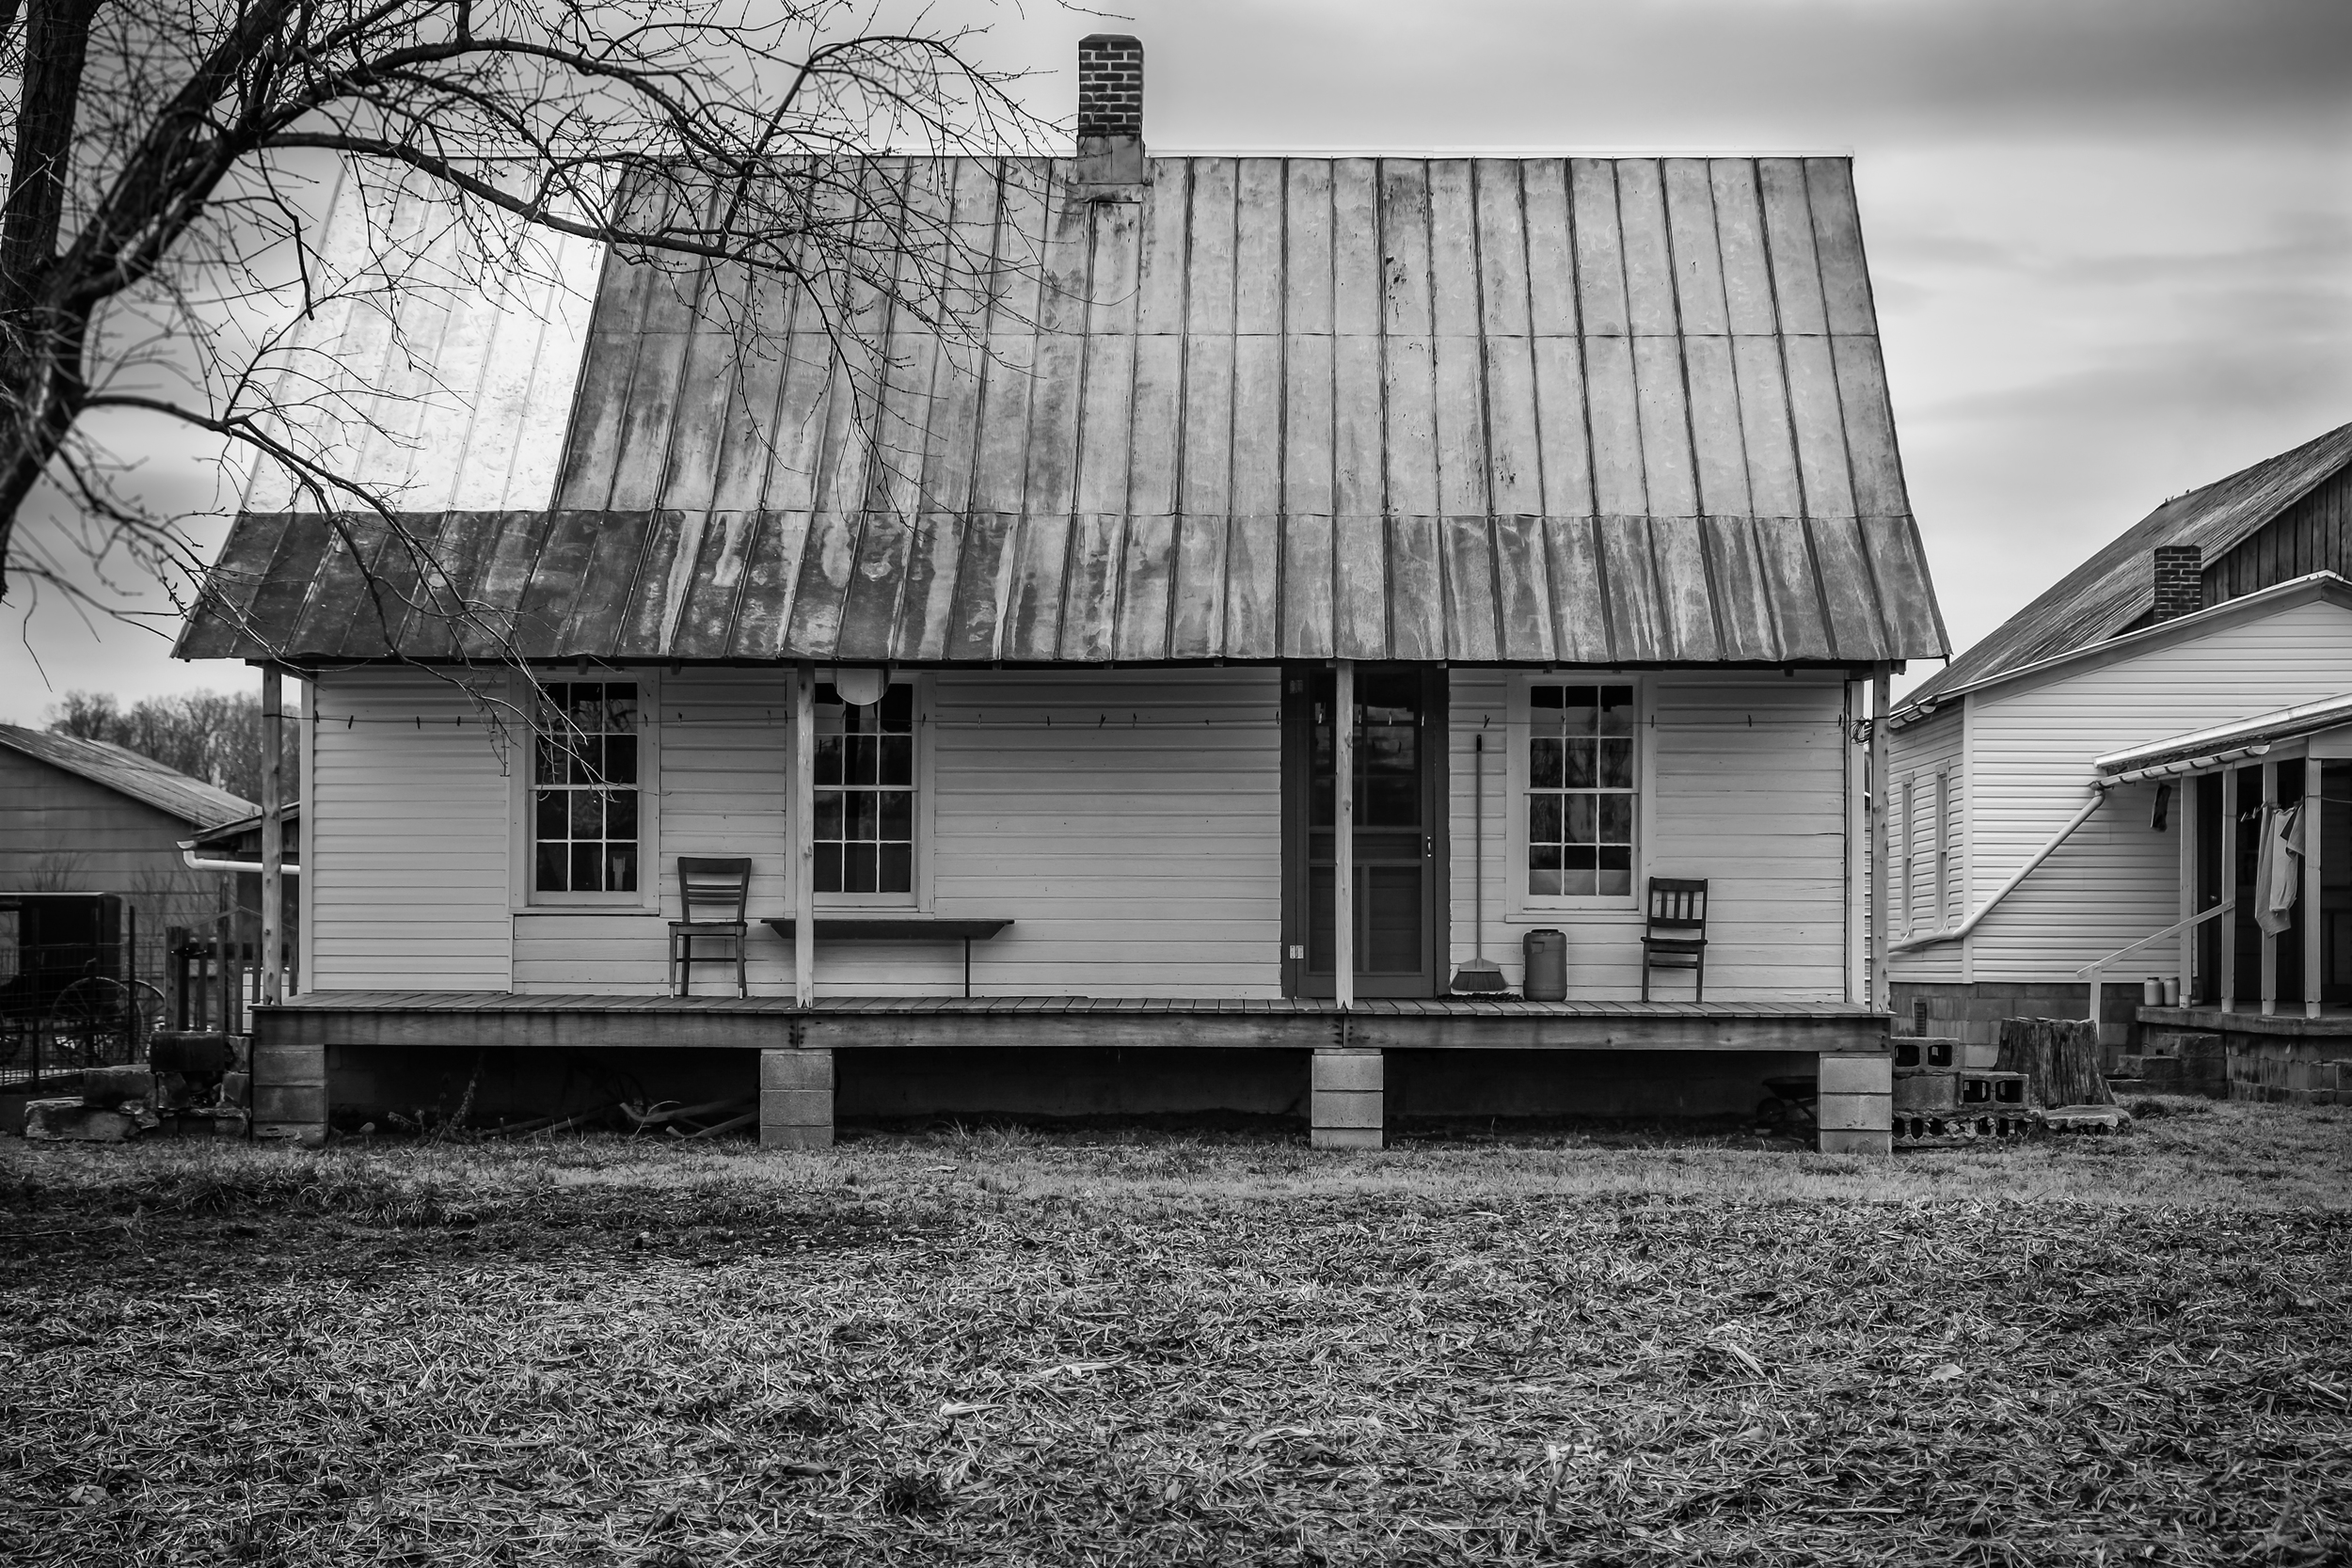 Amish Home BW 1 (1 of 1).jpg